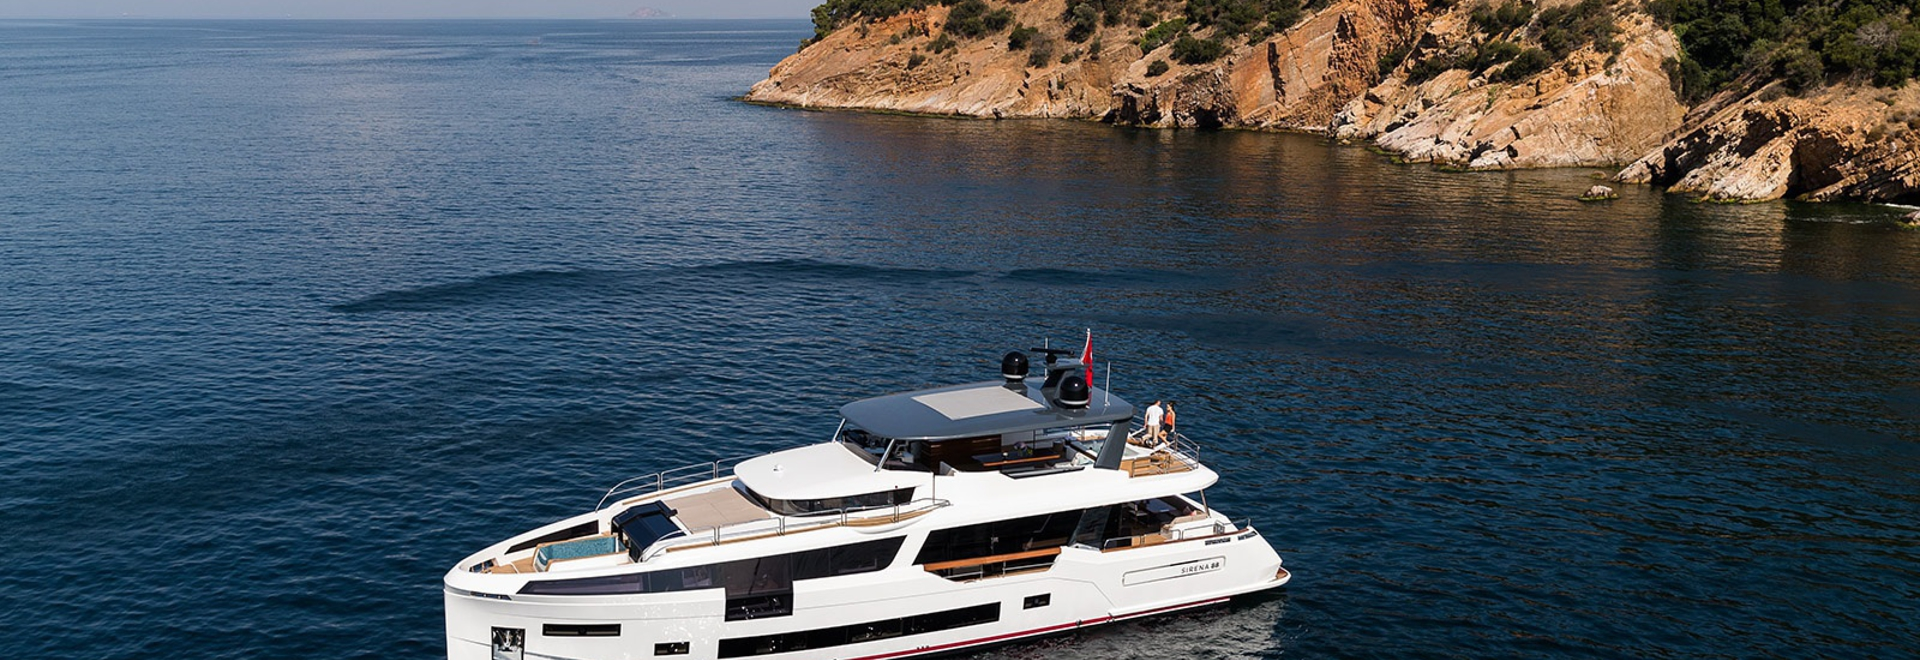 The Sirena 88 is debuting at the Cannes Yachting Festival